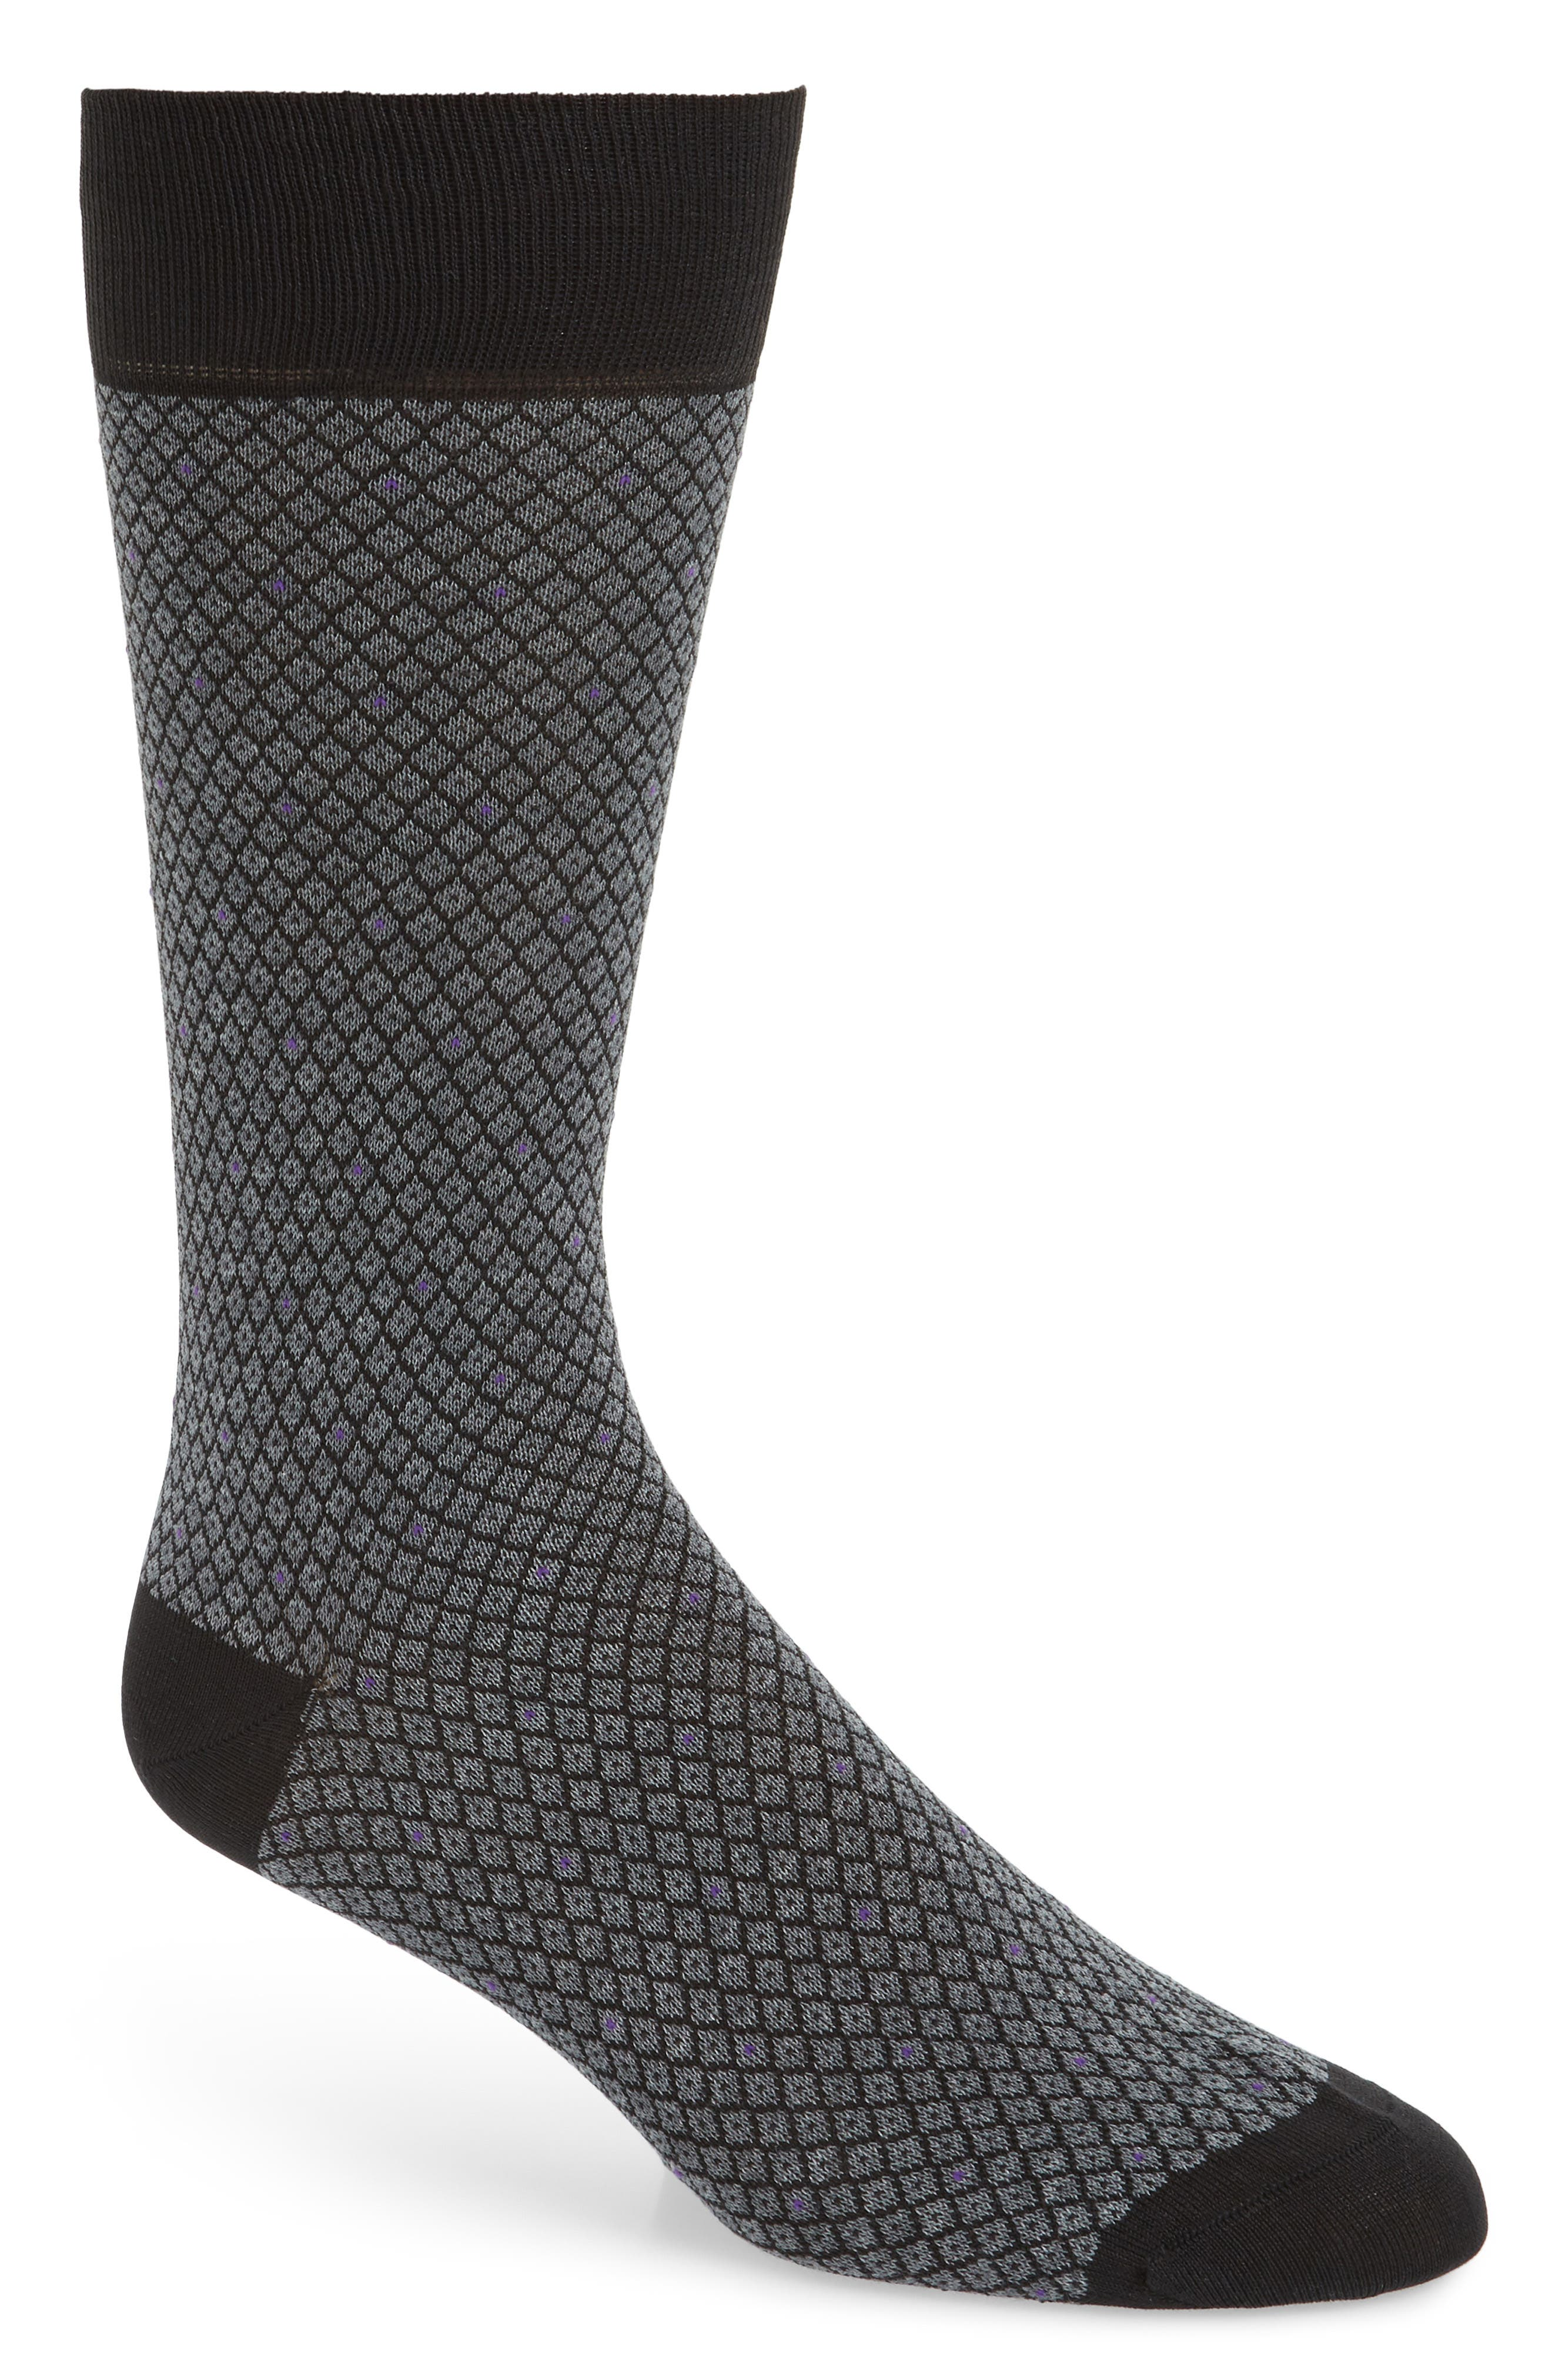 Diamond Jacquard Socks,                         Main,                         color, 020